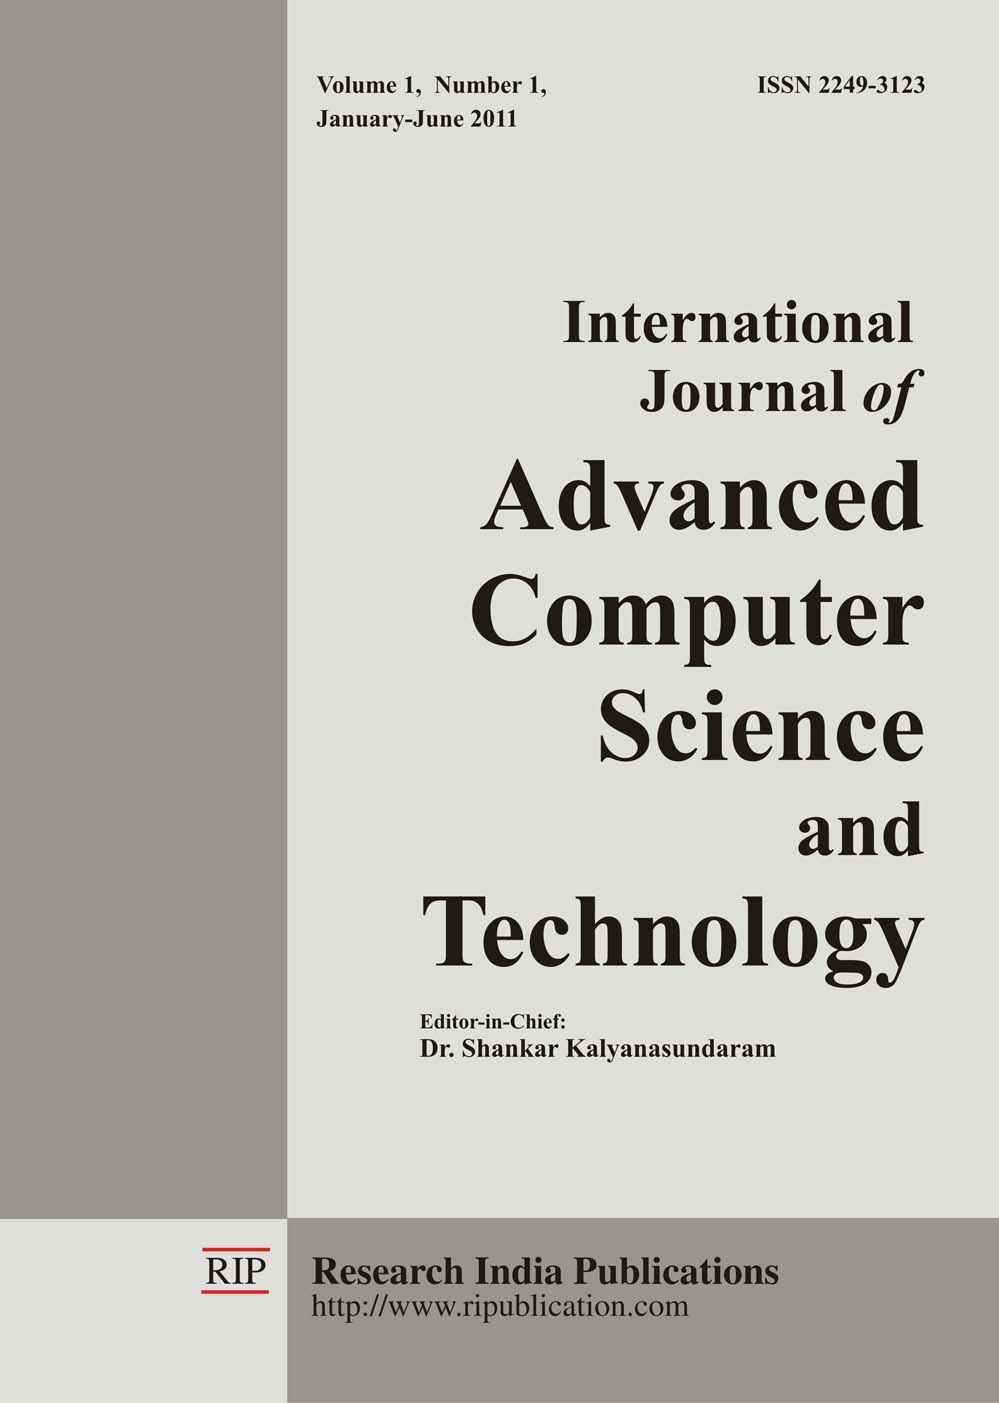 Database Security Journal Papers